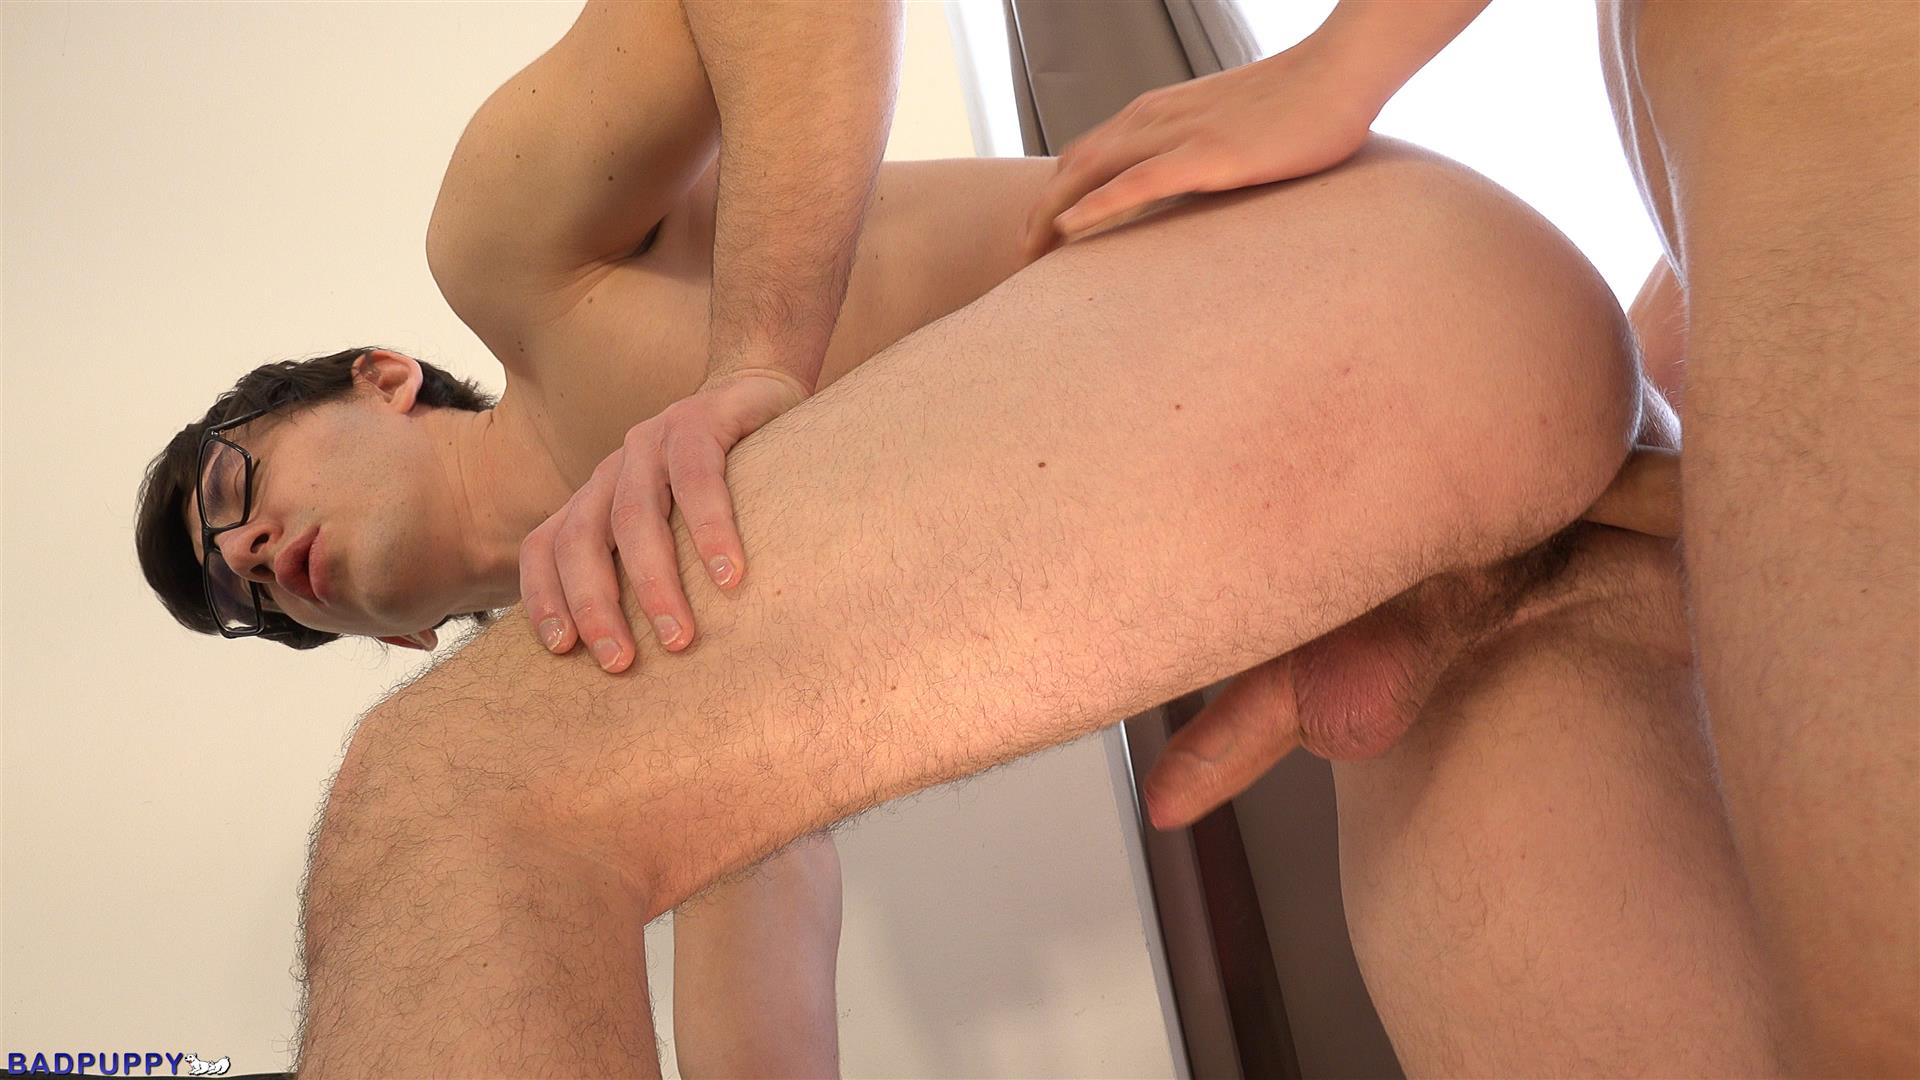 Badpuppy Petr Cisler and Roco Rita Hairy Ass Twinks Bareback Amateur Gay Porn 19 Nerdy Twink Gets Fucked With A Big Uncut Dick In His Hairy Ass